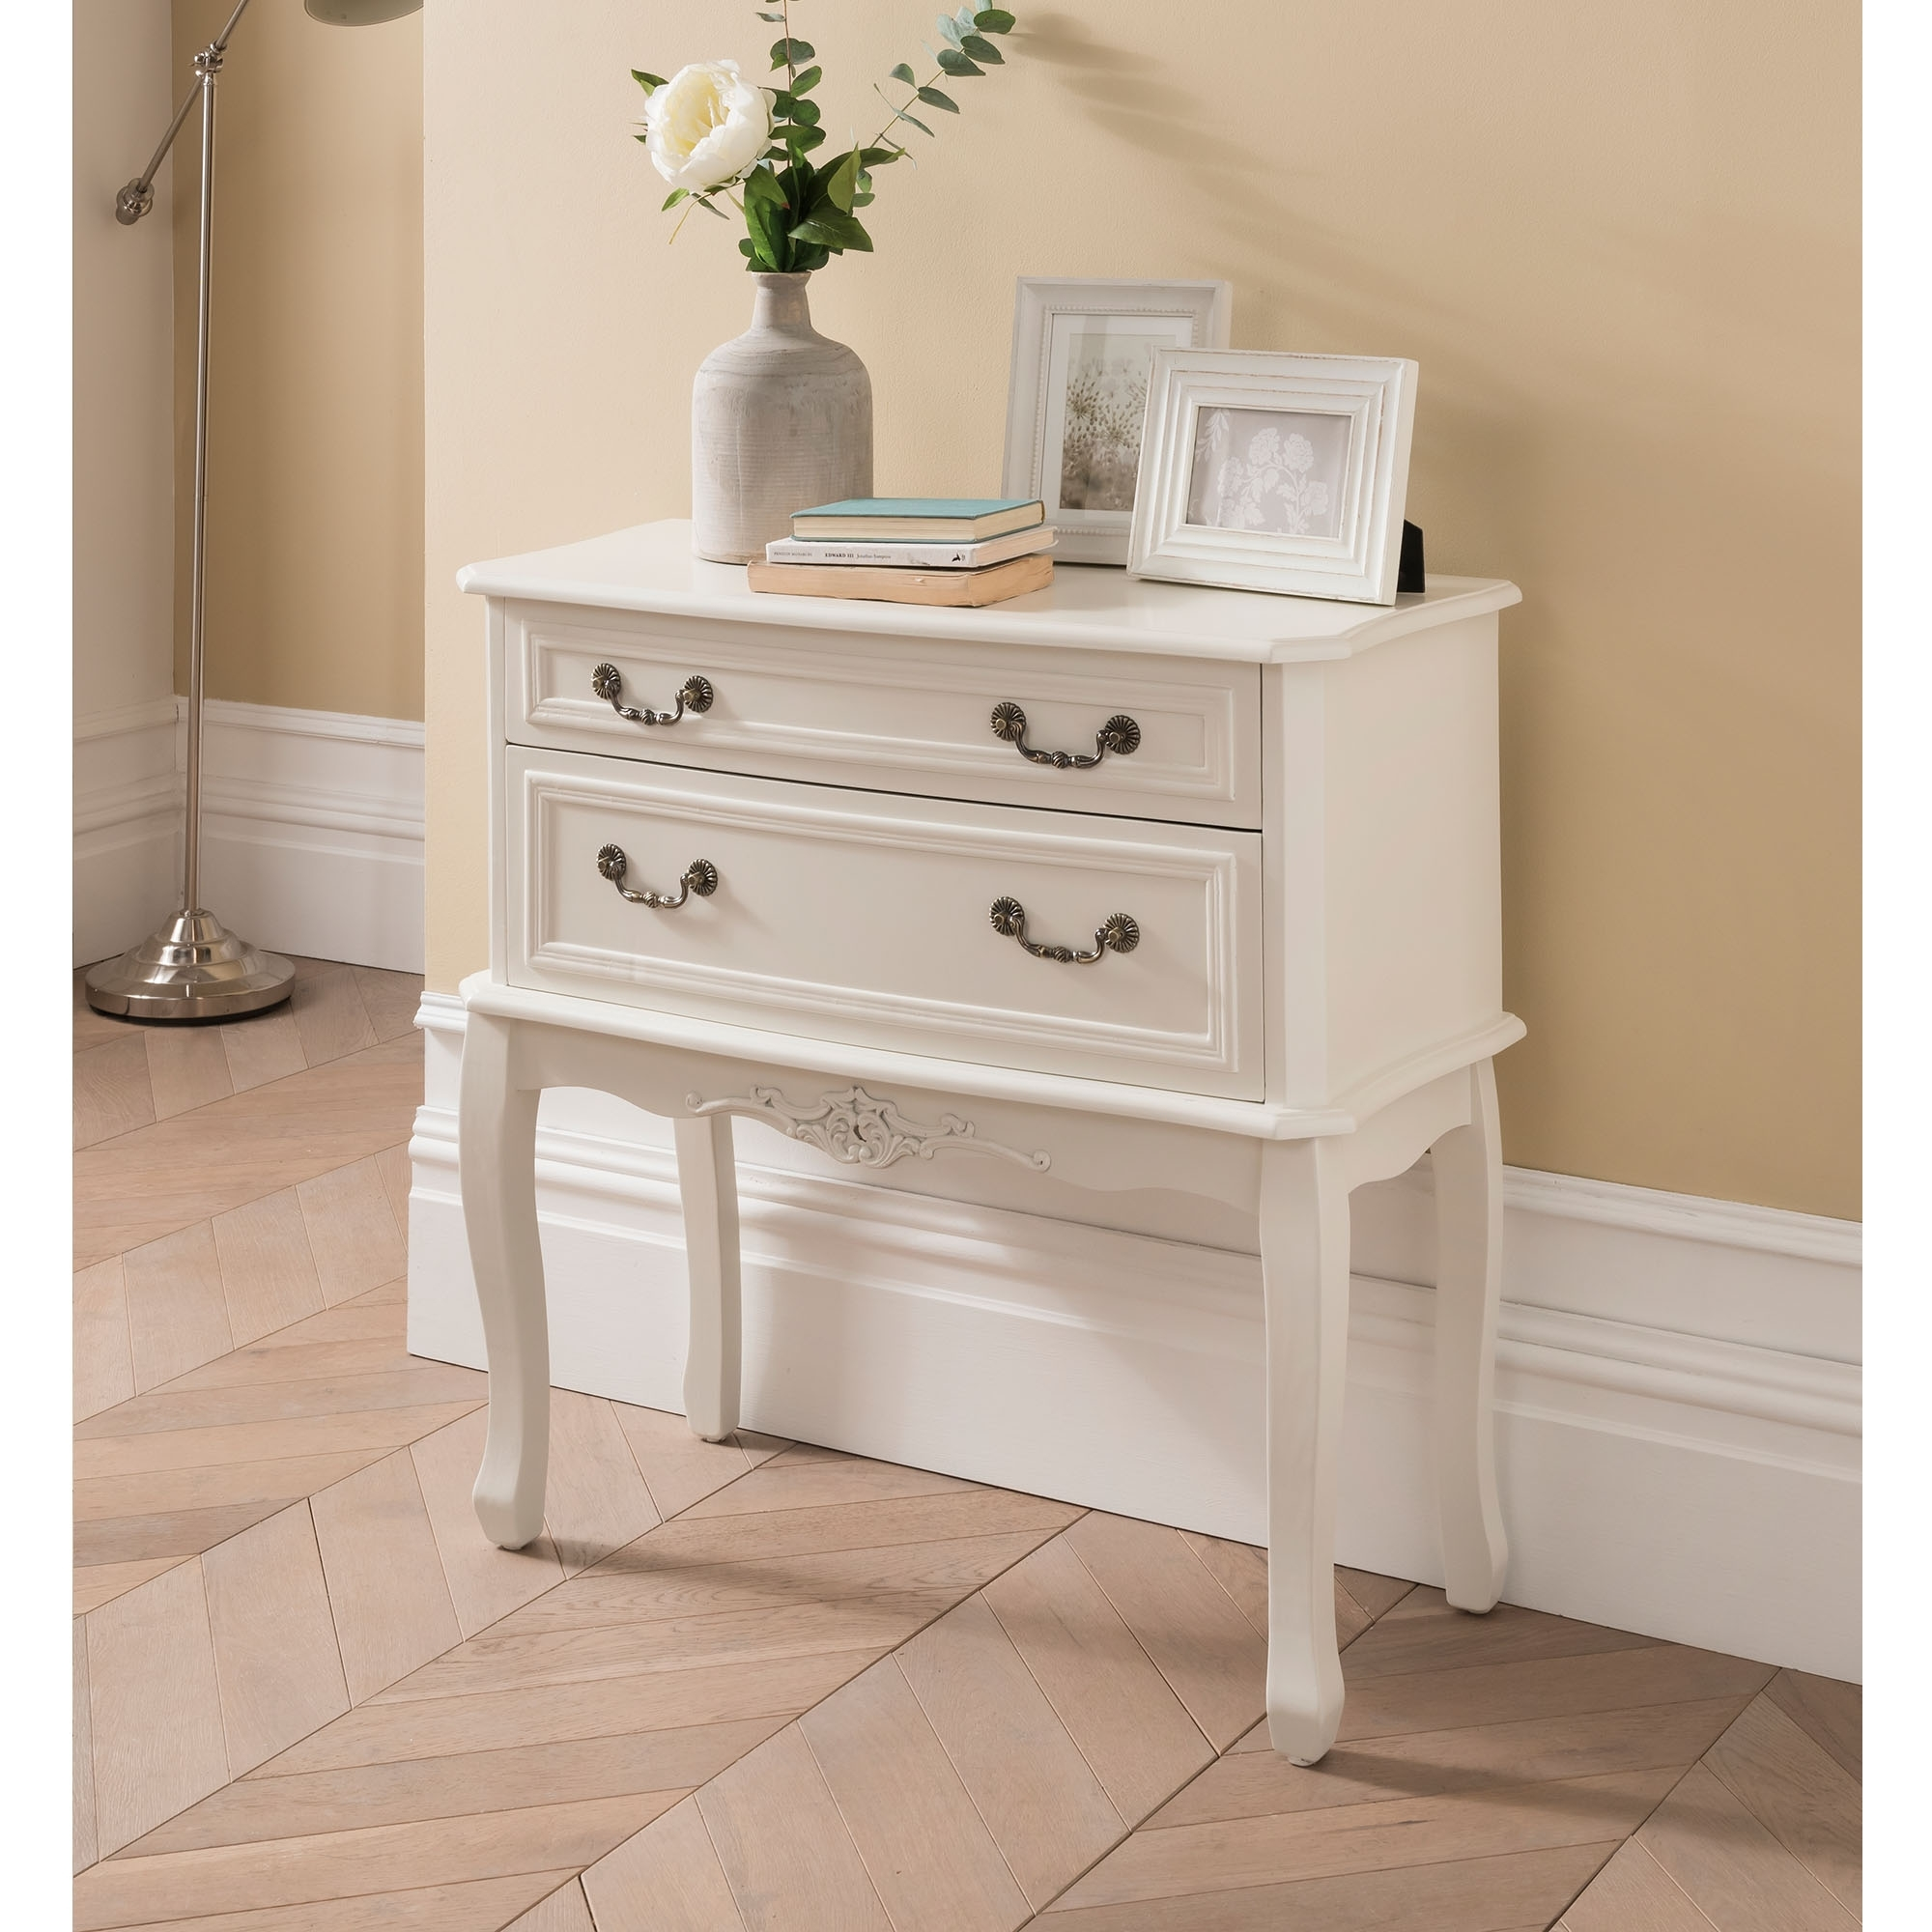 Etienne White 2 Drawer Antique French Style Chest Of Drawers French